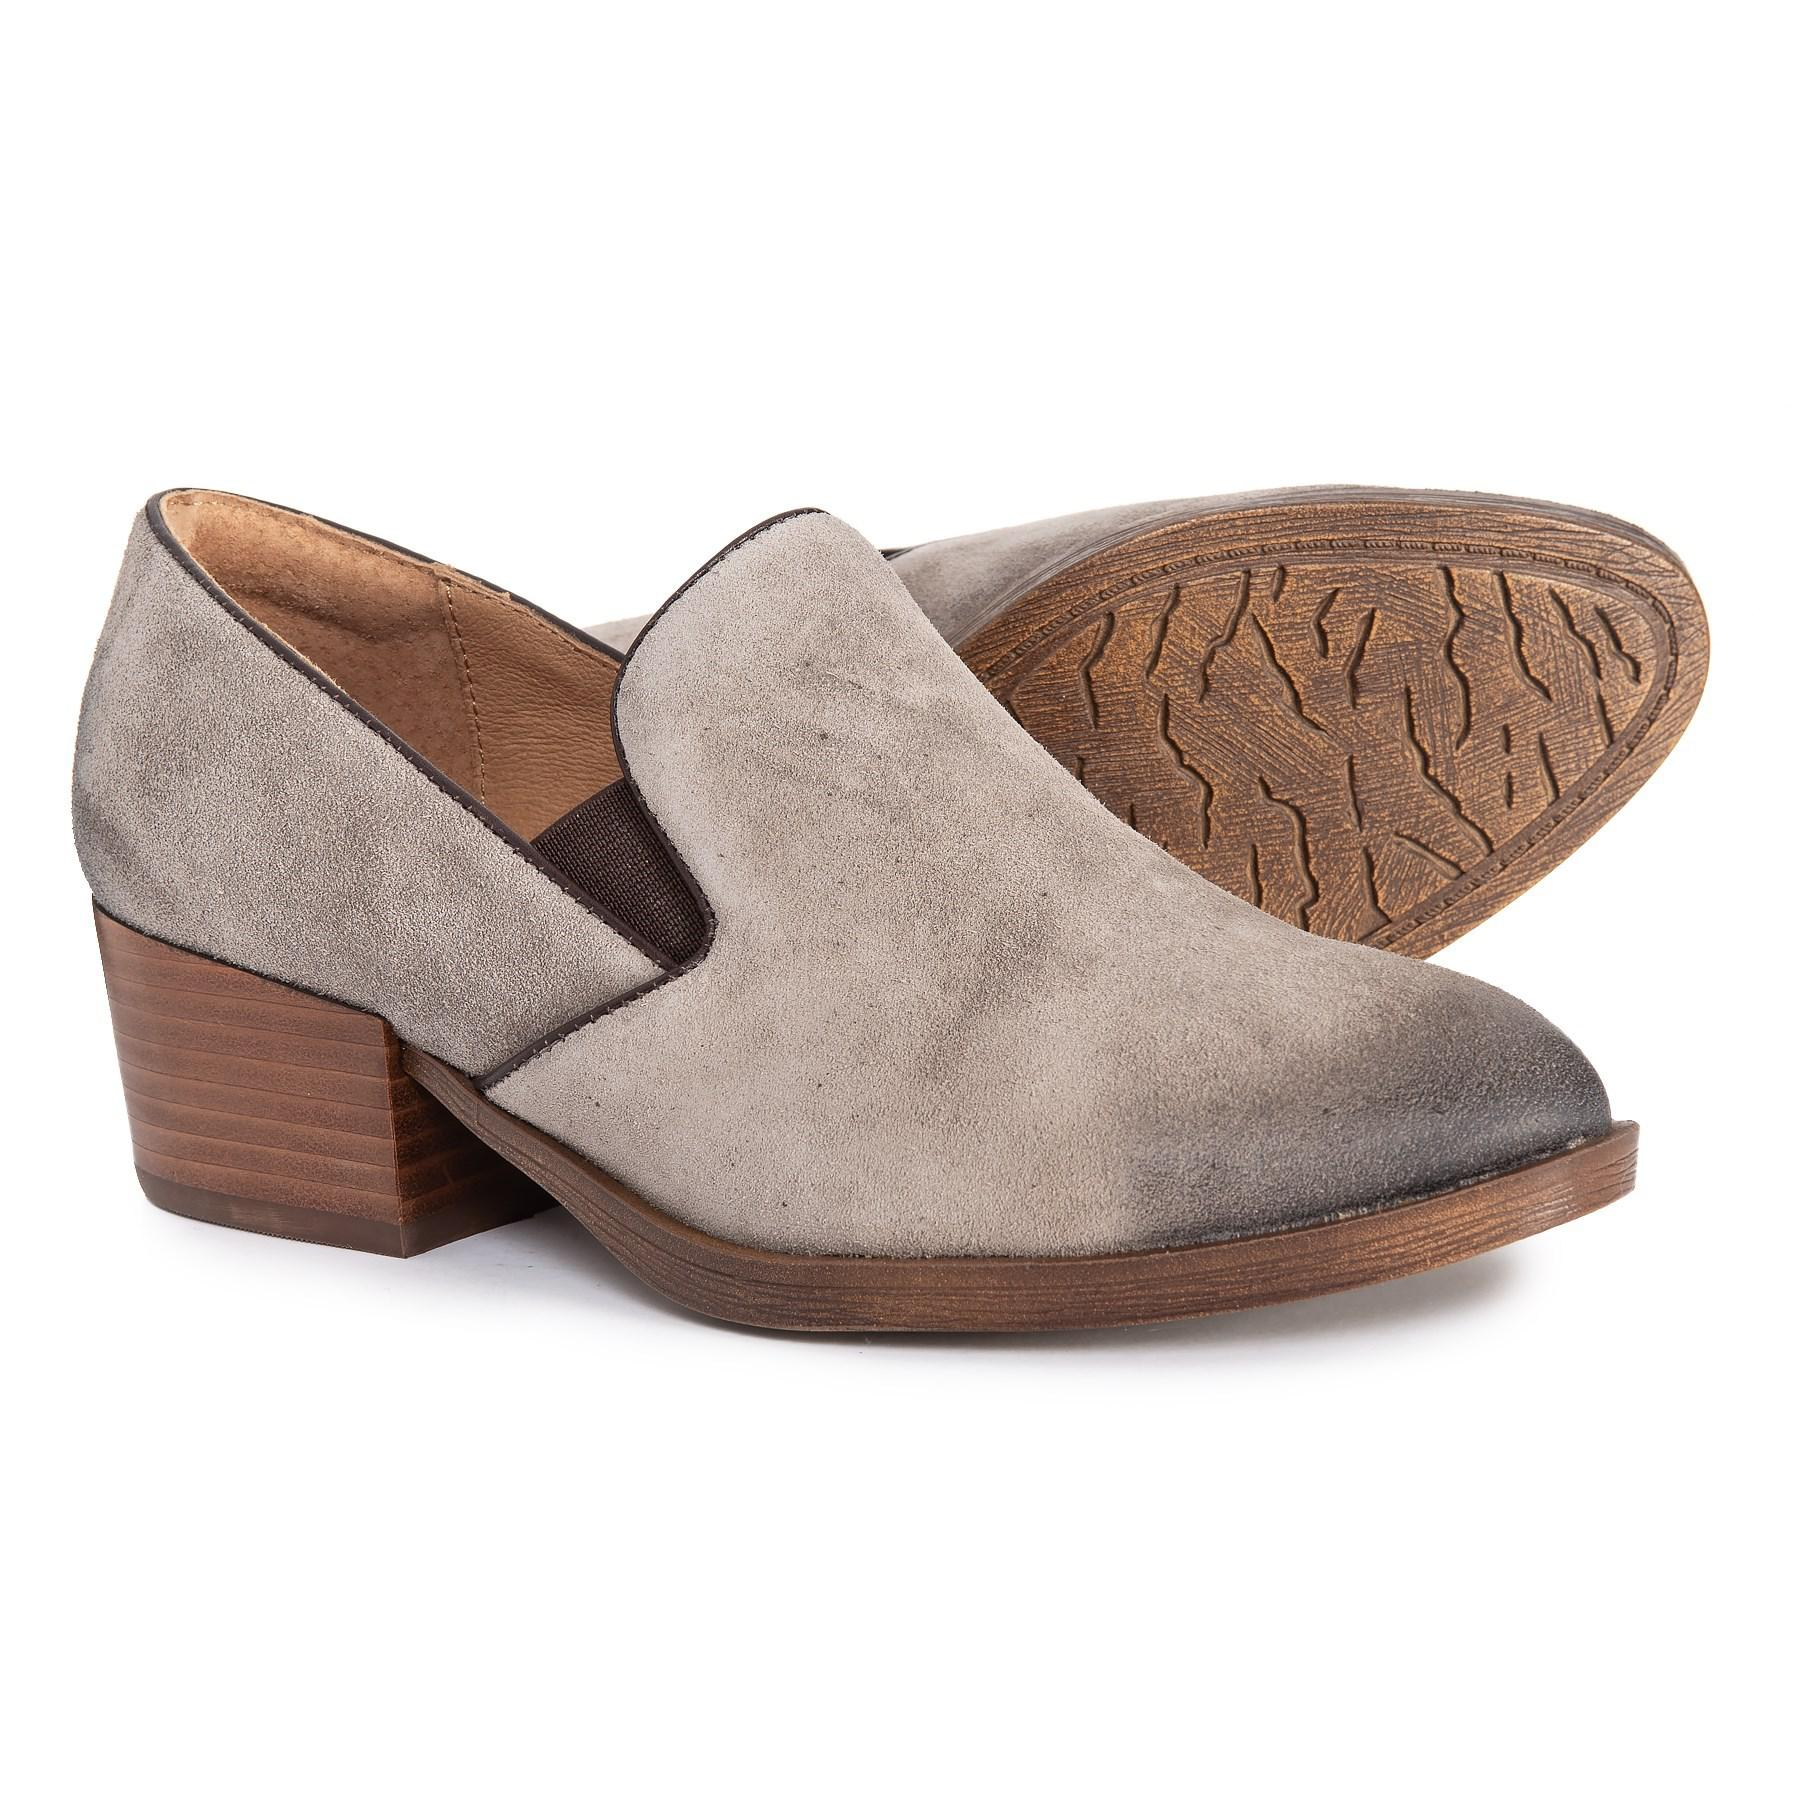 ebfb92f35c9 Lyst - Söfft Velina Shoes in Gray